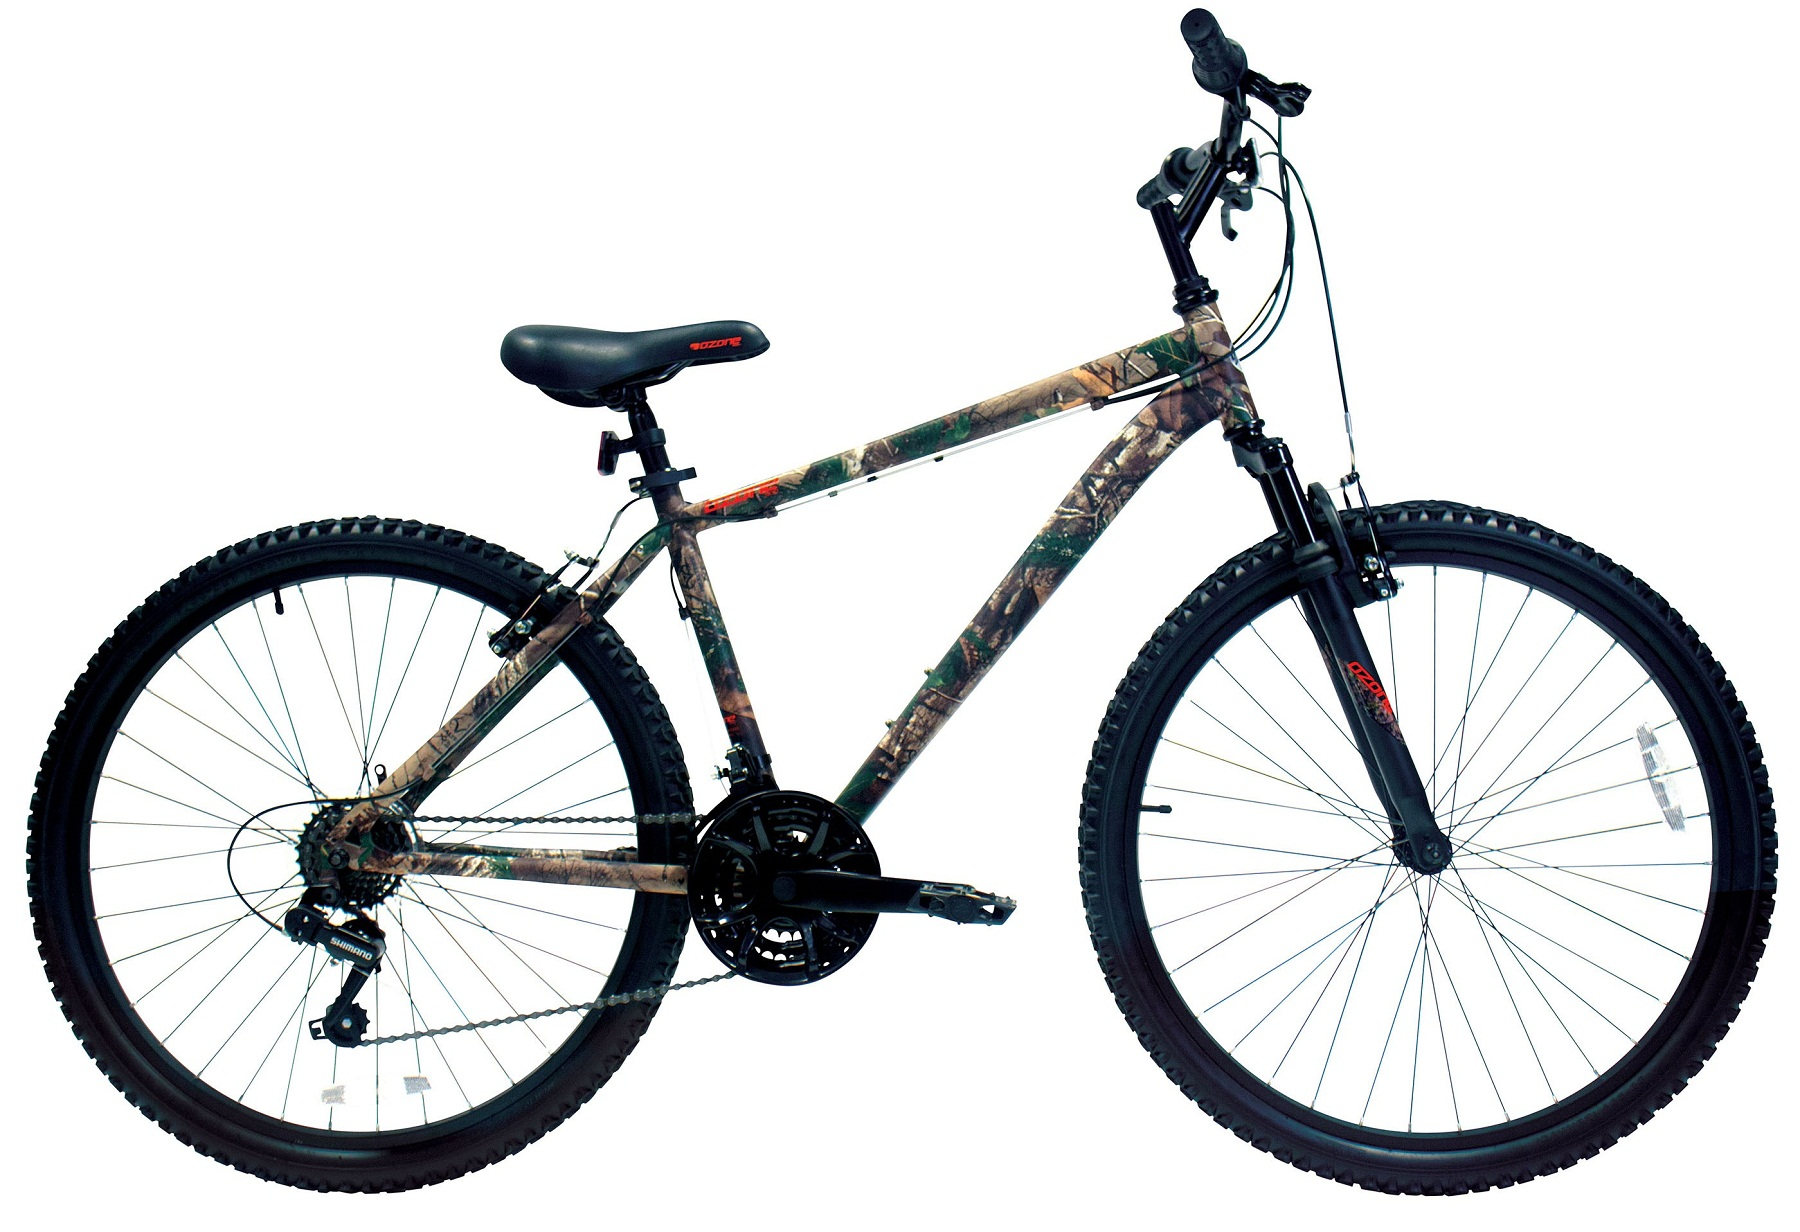 Realtree camo bike now available at academy sports for Academy sports fish finders